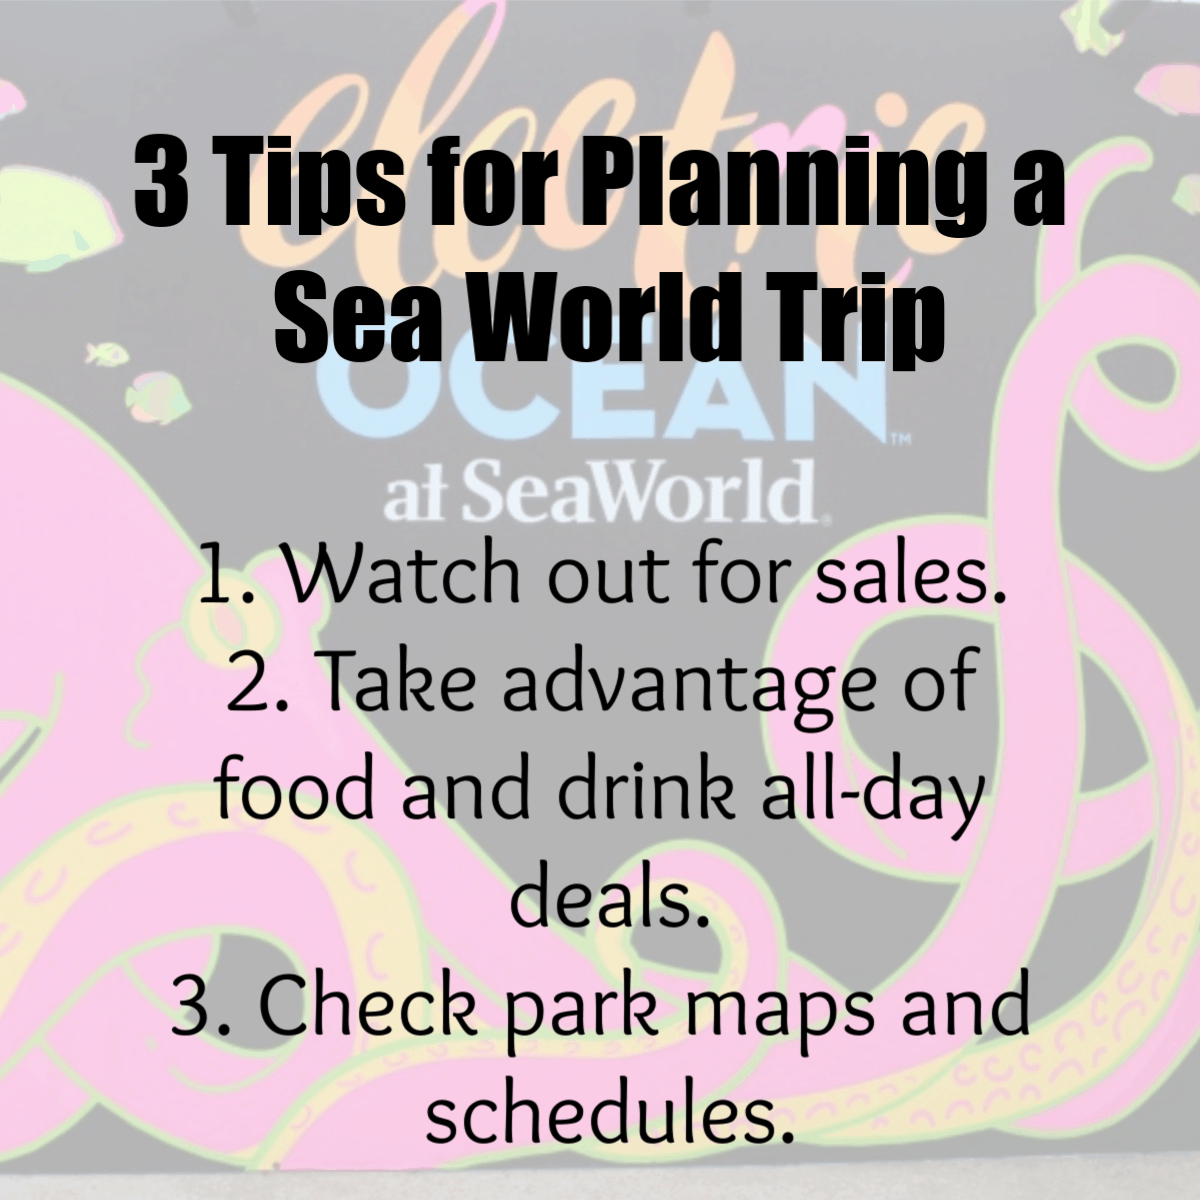 3 Tips for planning a Sea World Trip